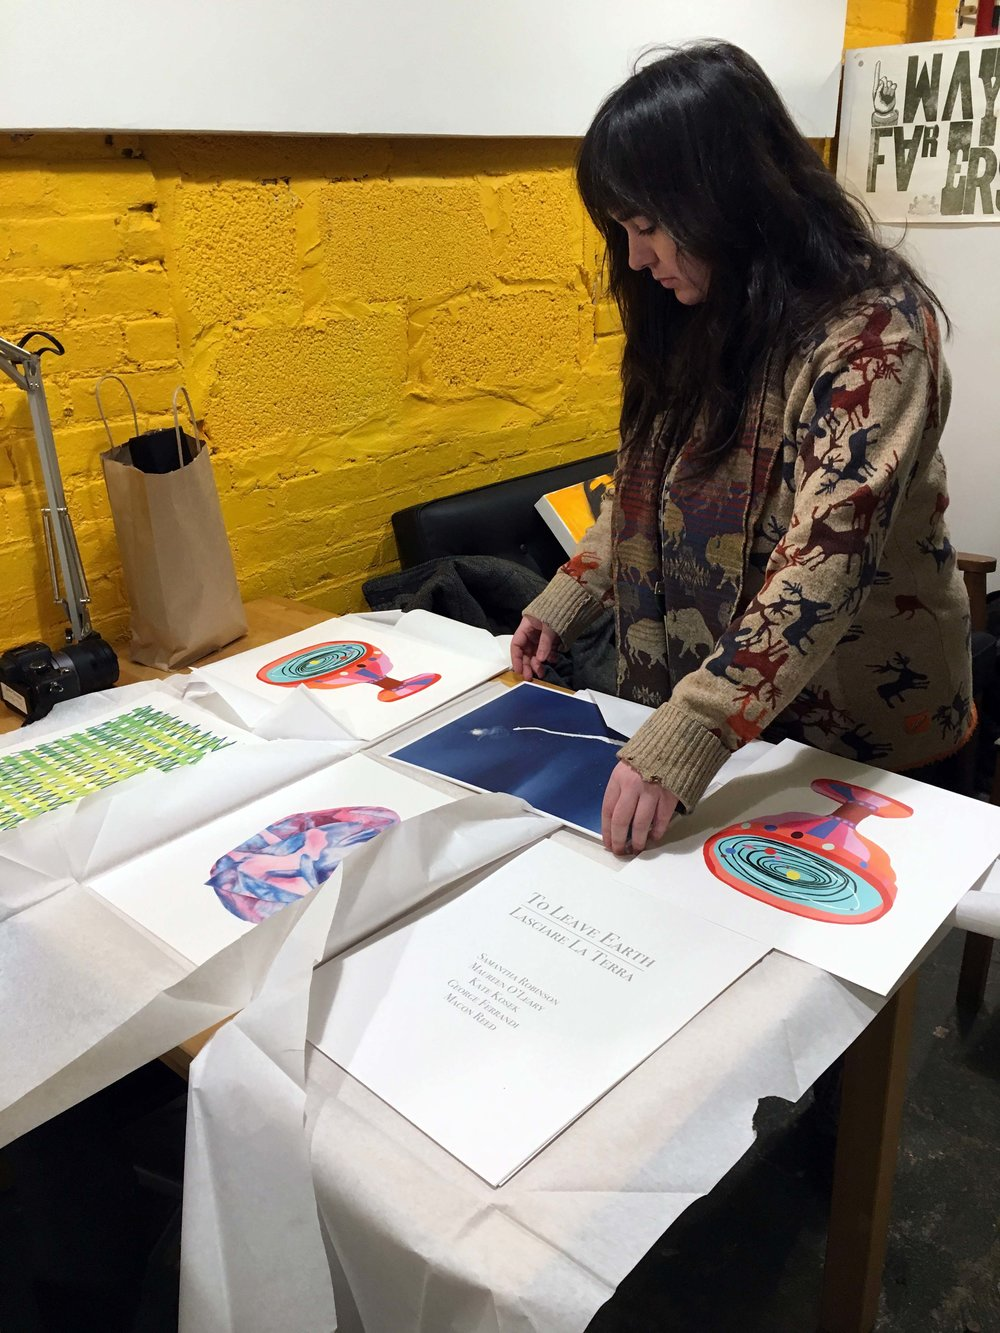 Wayfarers member Samantha Robinson assembling the full portofolios at Wayfarers